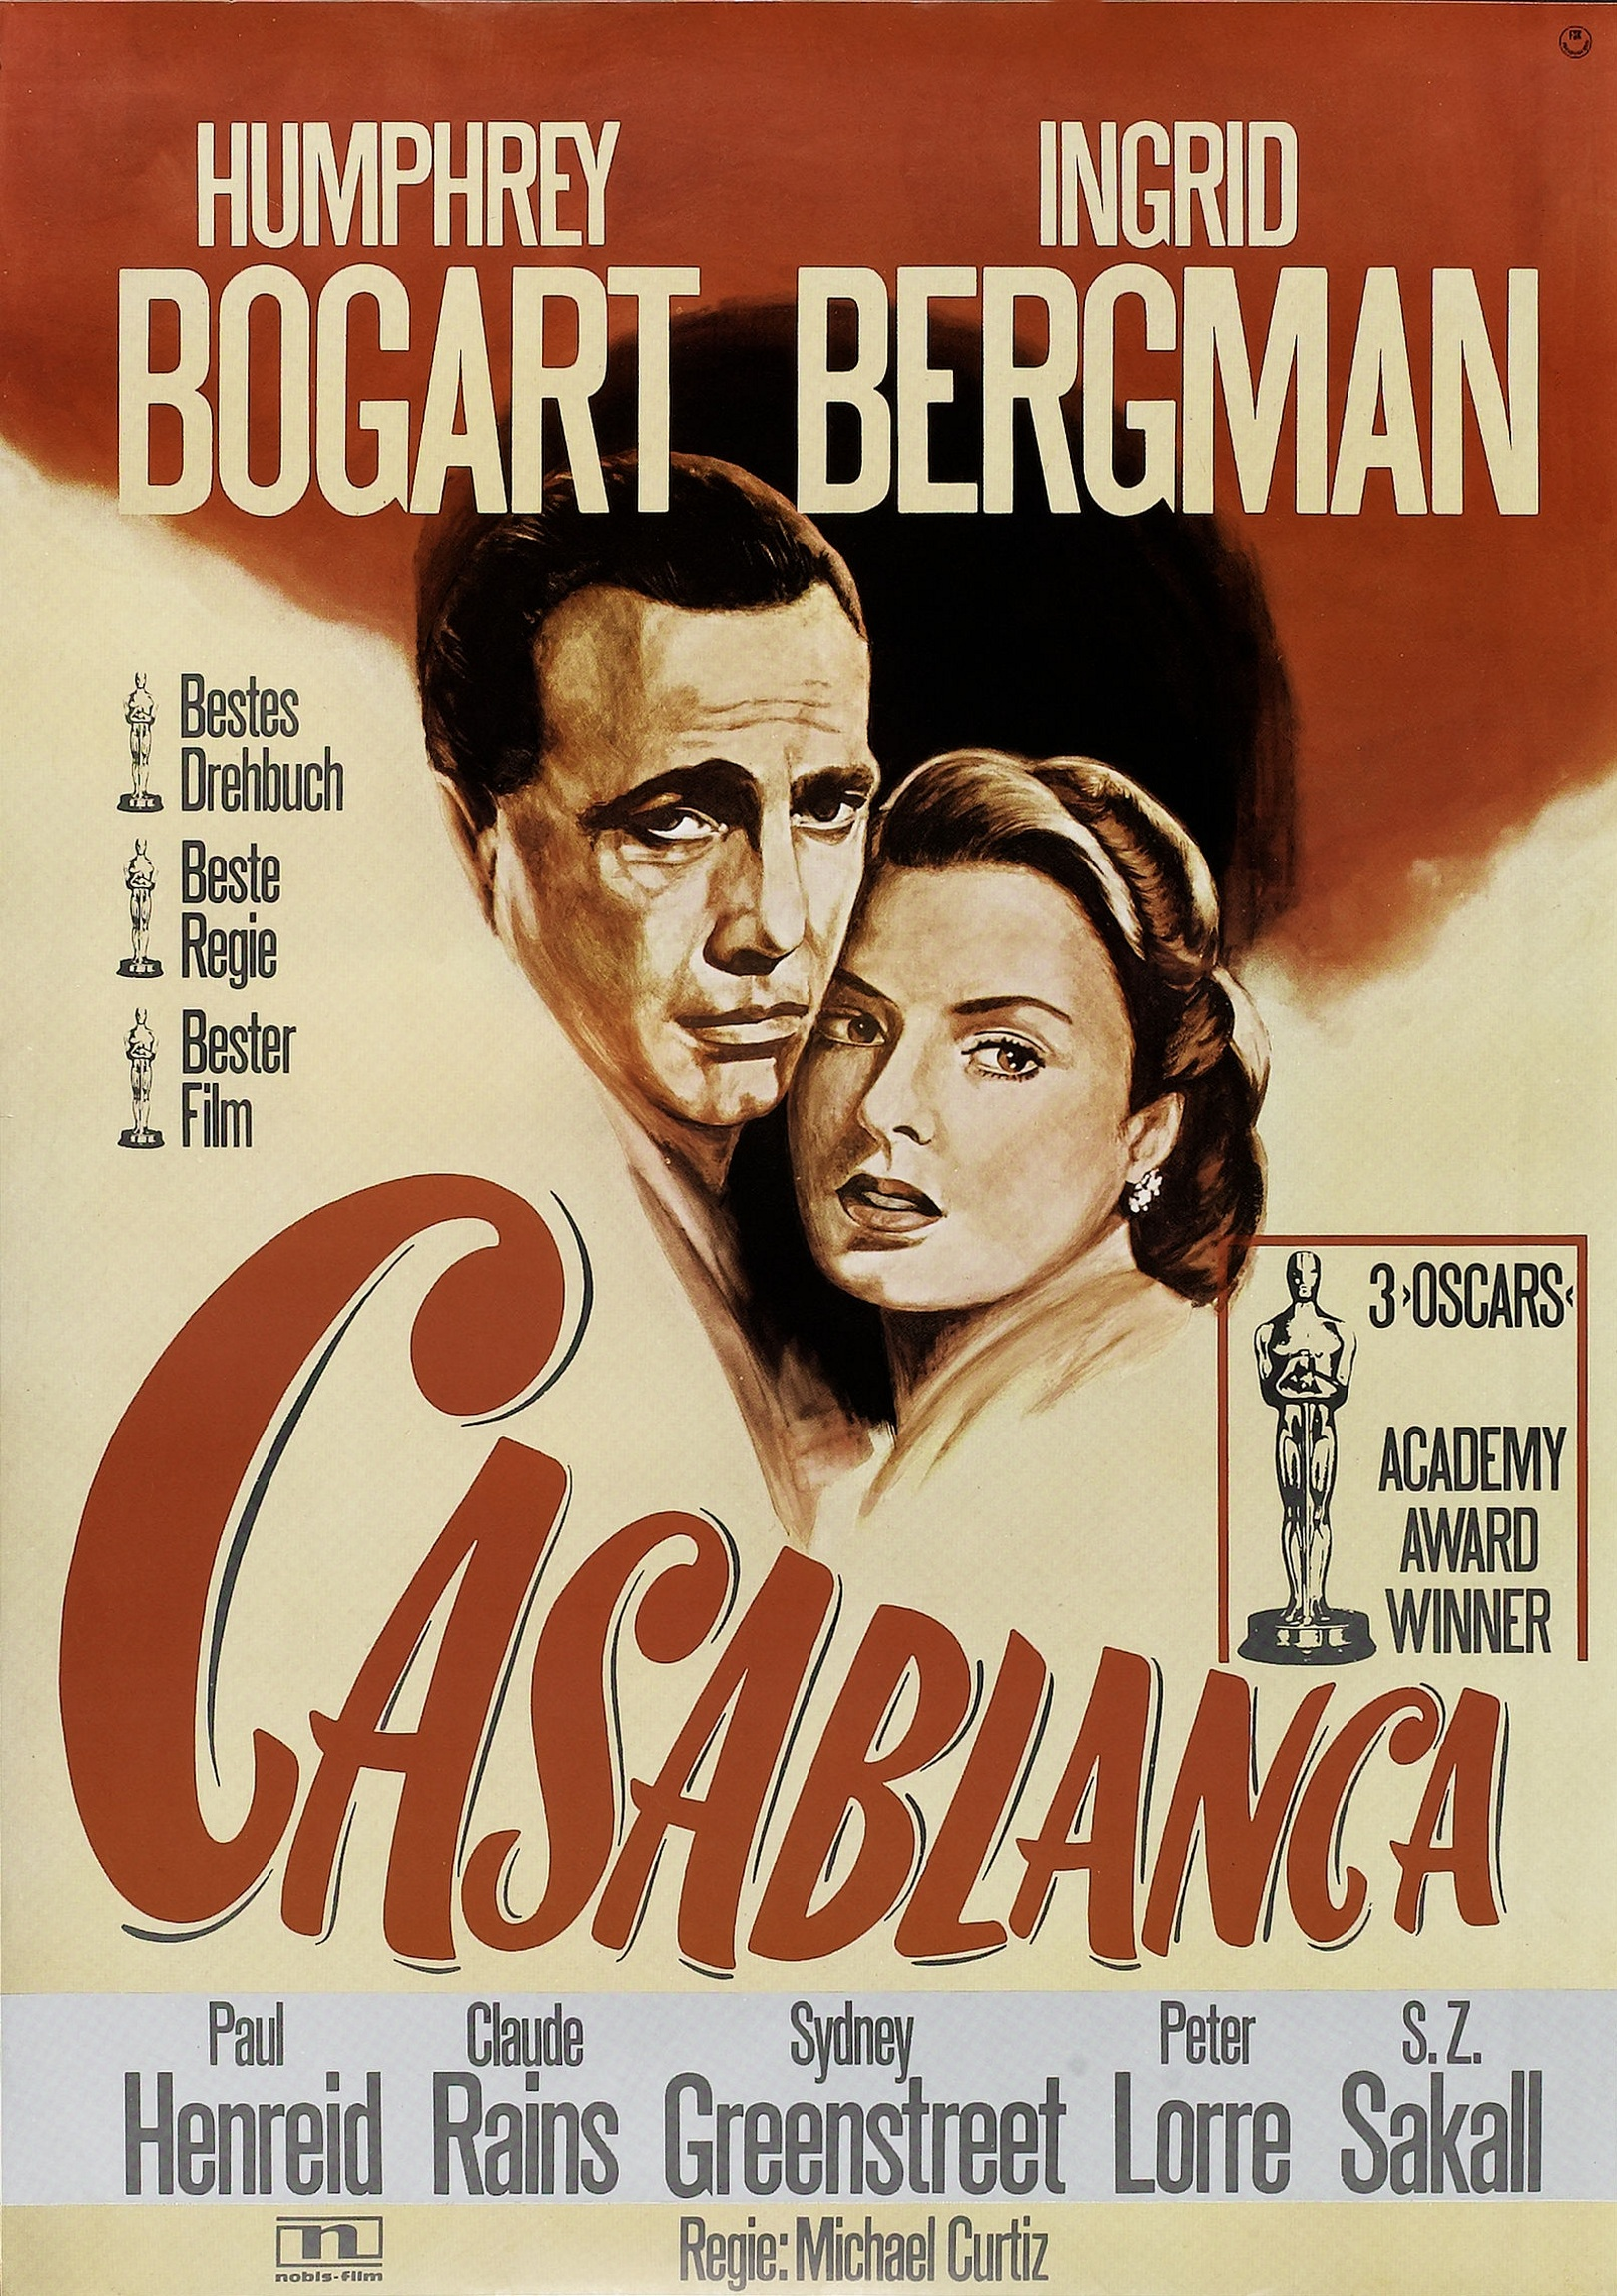 a review of casablanca a film by michael curtiz Michael curtiz (1888-1962) was without doubt one of the most important directors in film history, yet he has never been granted his deserved recognition and no full-scale work on him has previously been published it is clear from the title that this is strictly a review of curtiz's film careeressentially it.